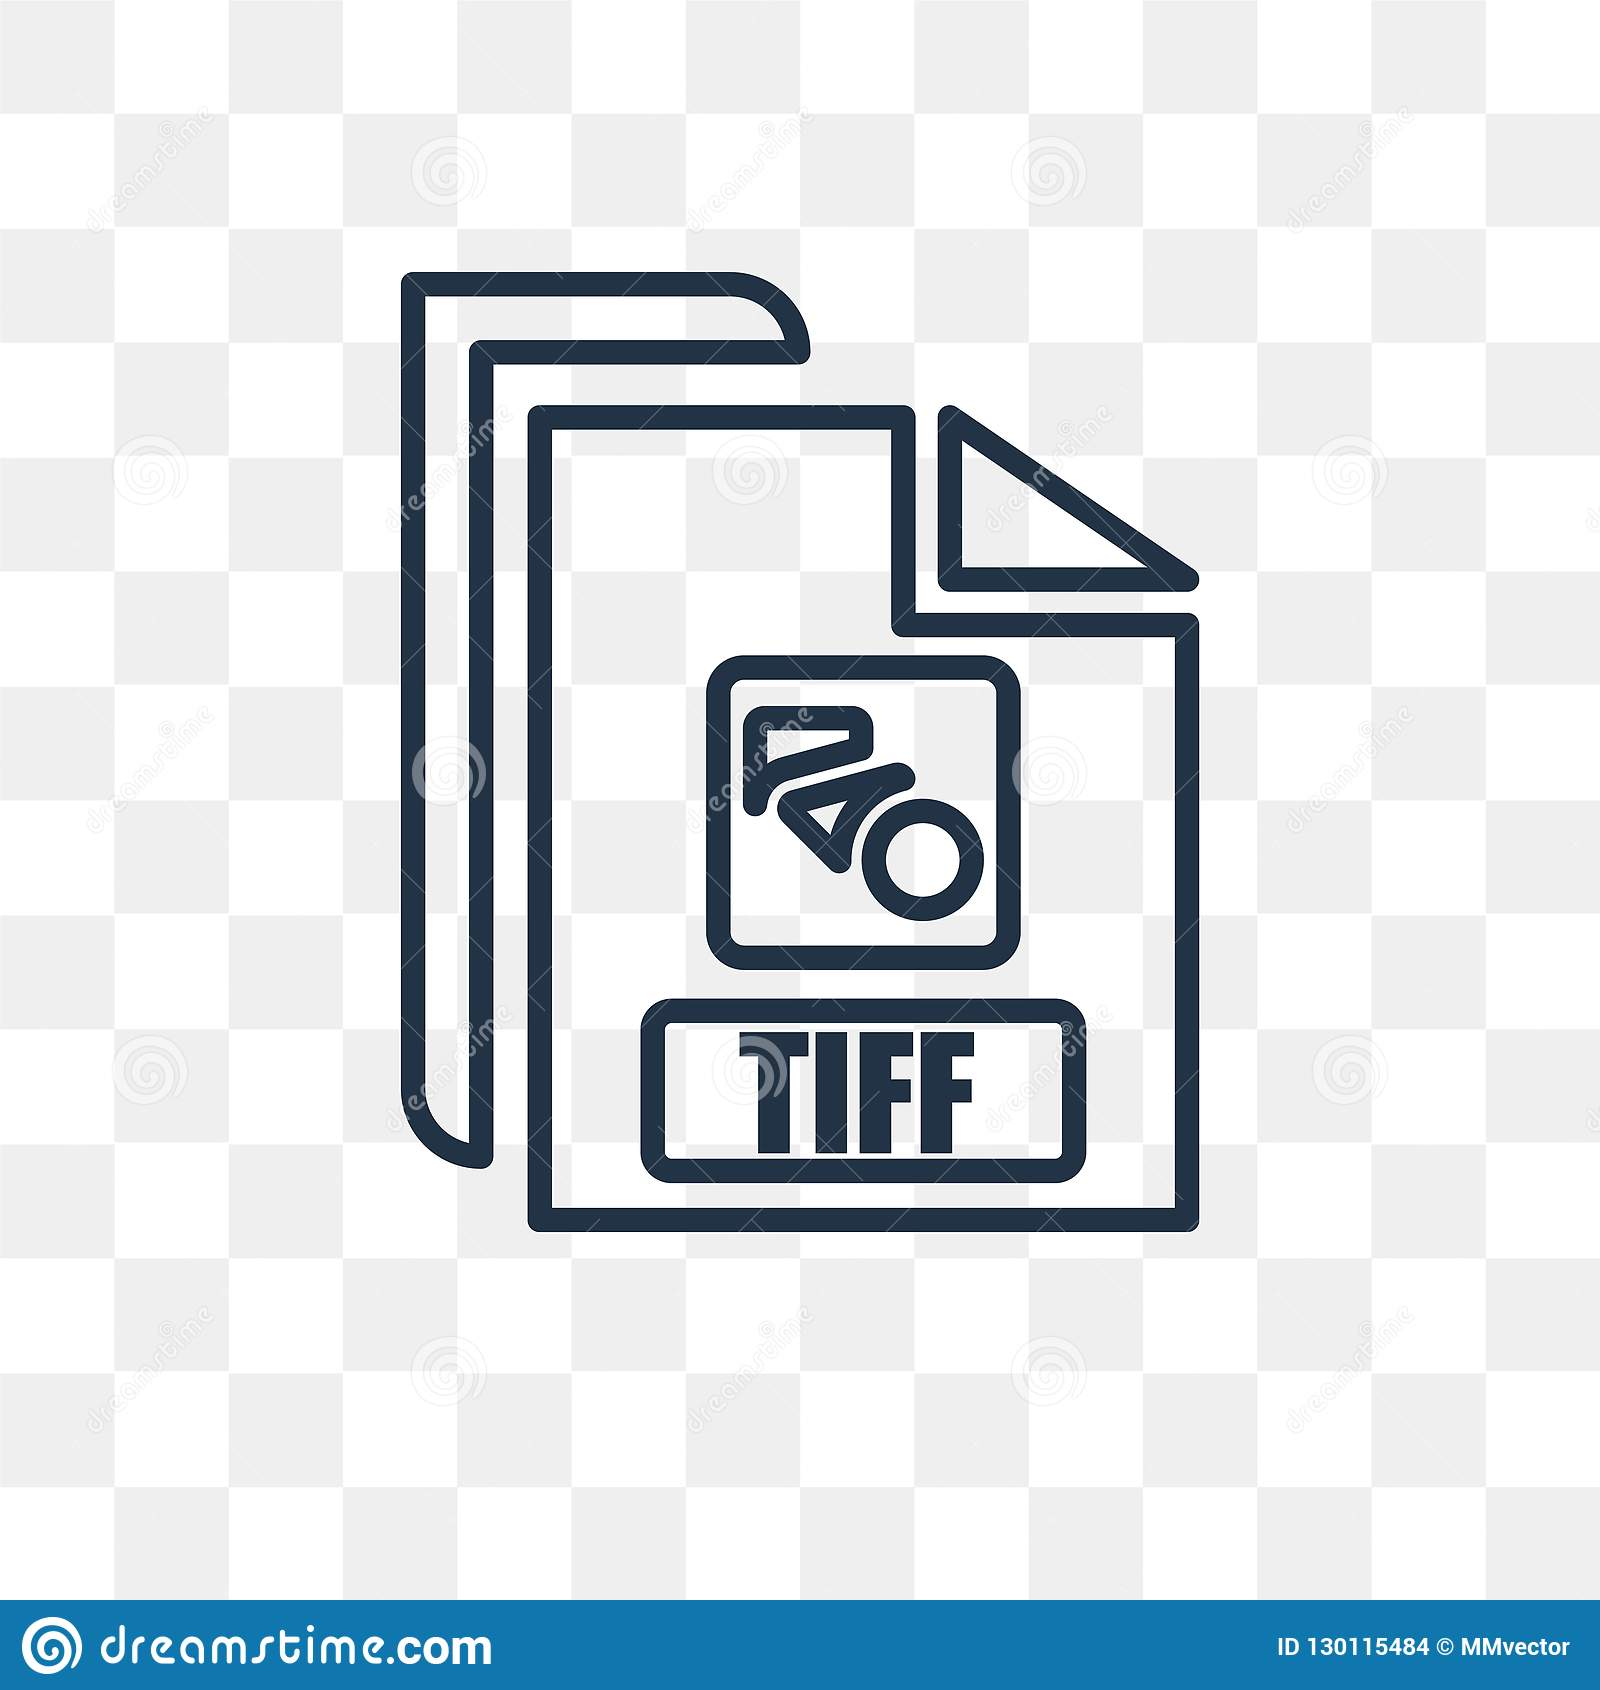 tiff vector icon isolated